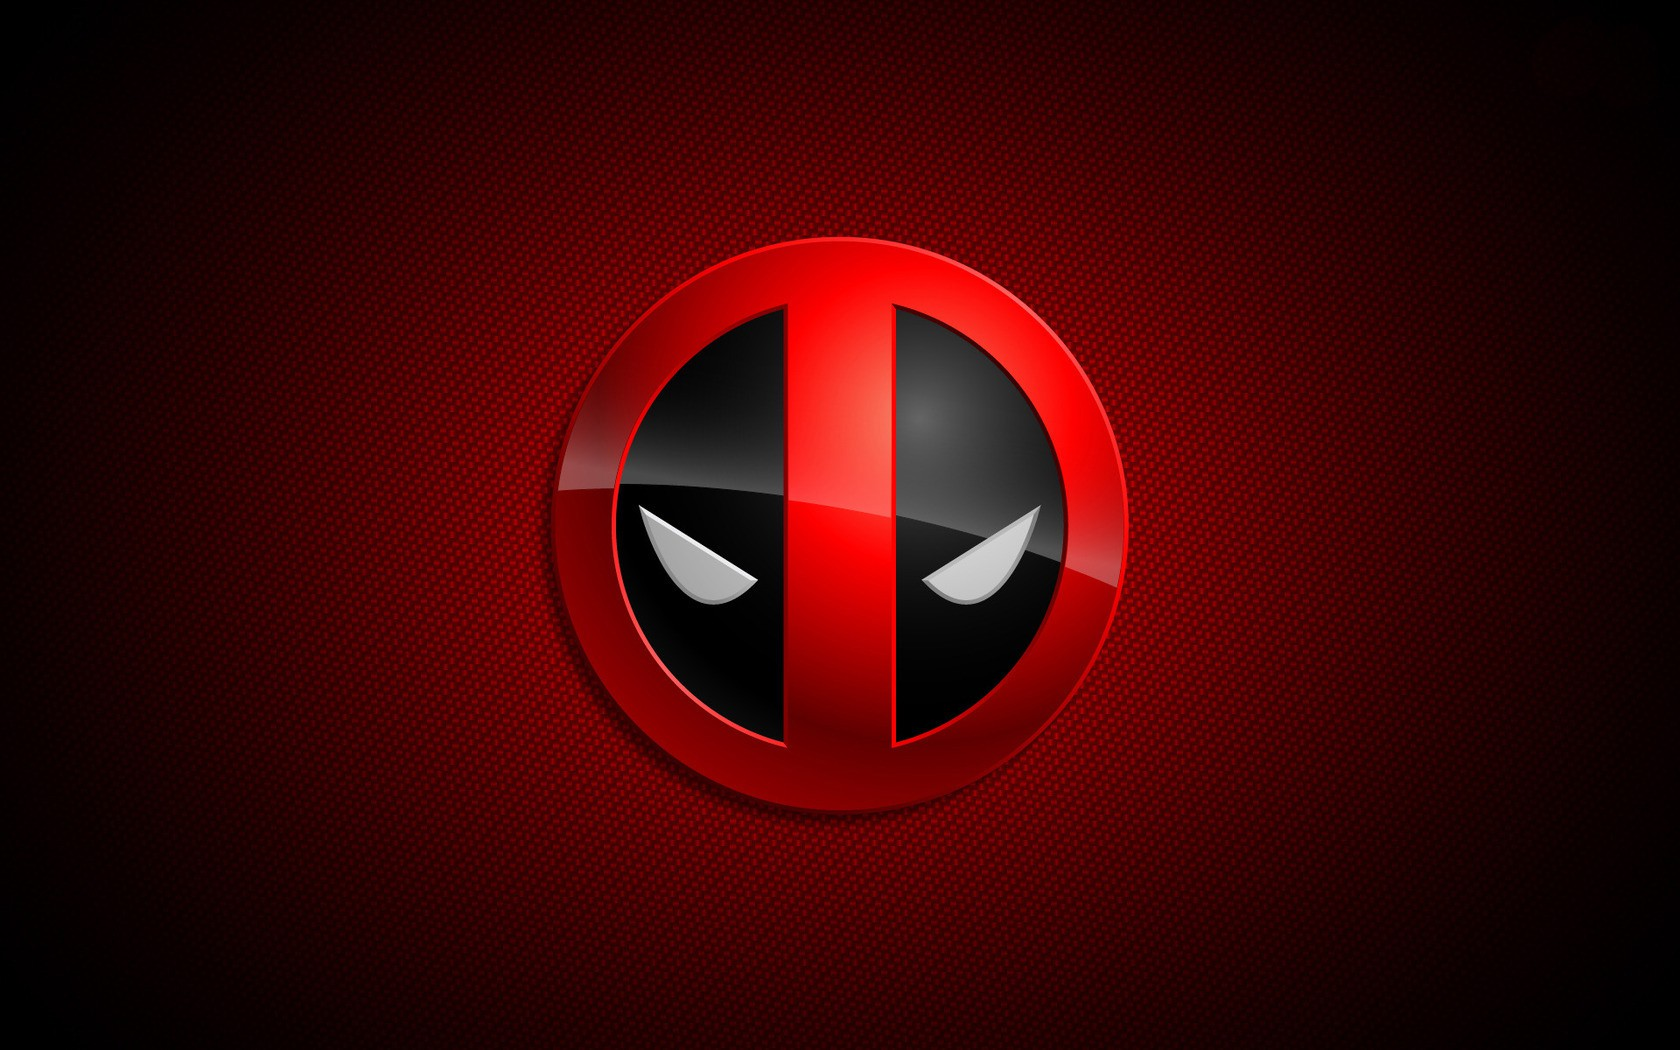 Deadpool Games Logo Backgrounds   New HD Wallpapers 1680x1050